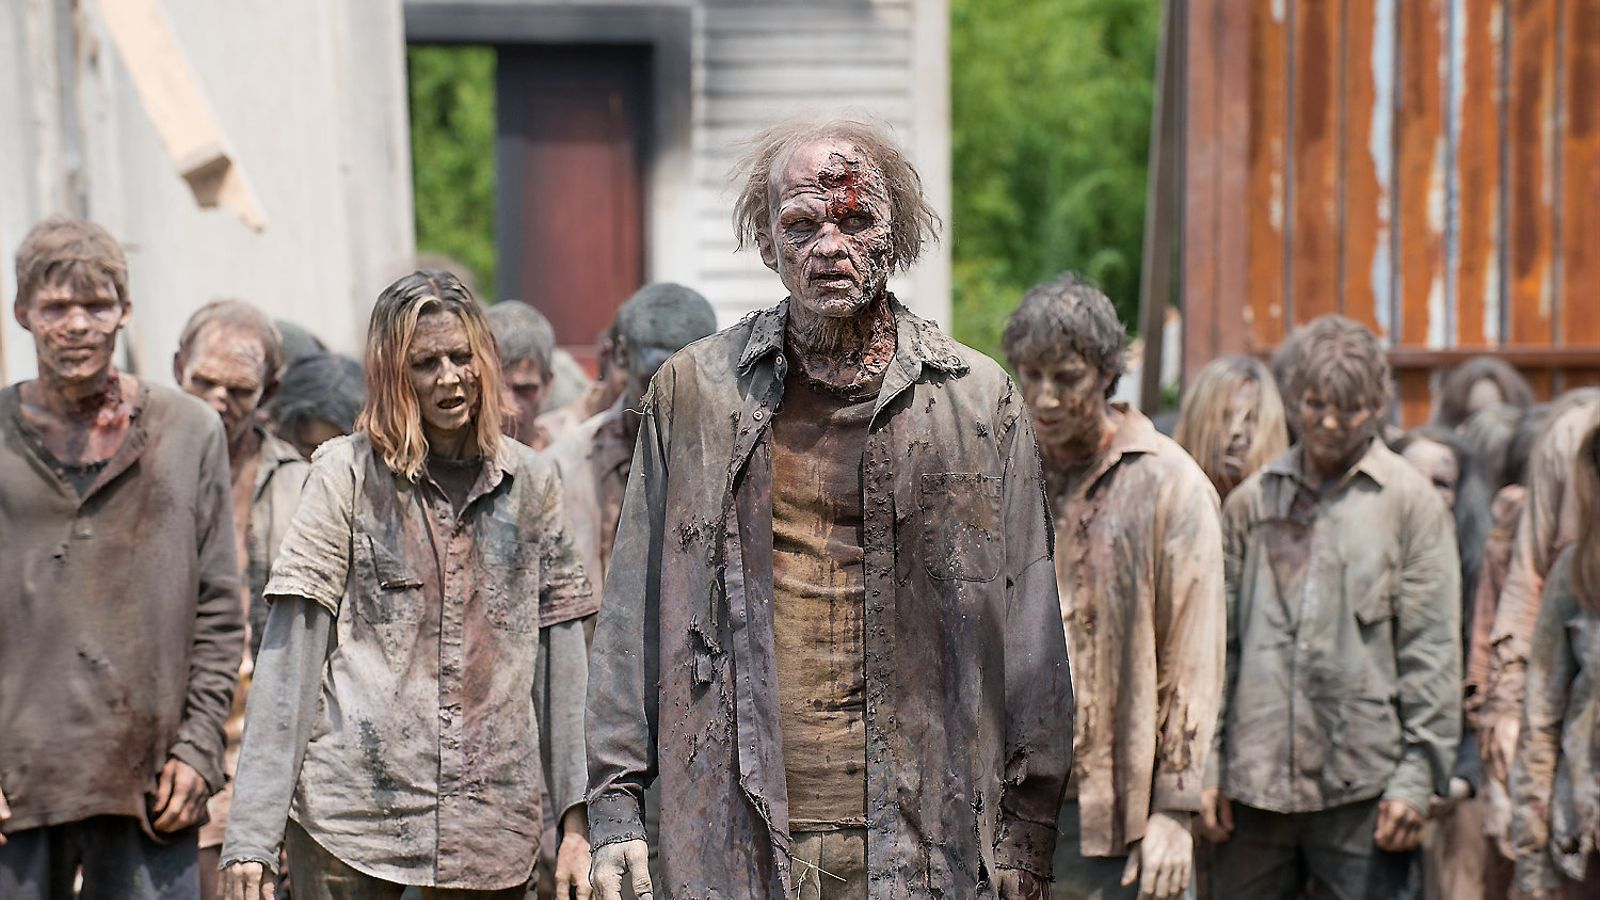 El creador de 'The walking dead' demanda la cadena AMC